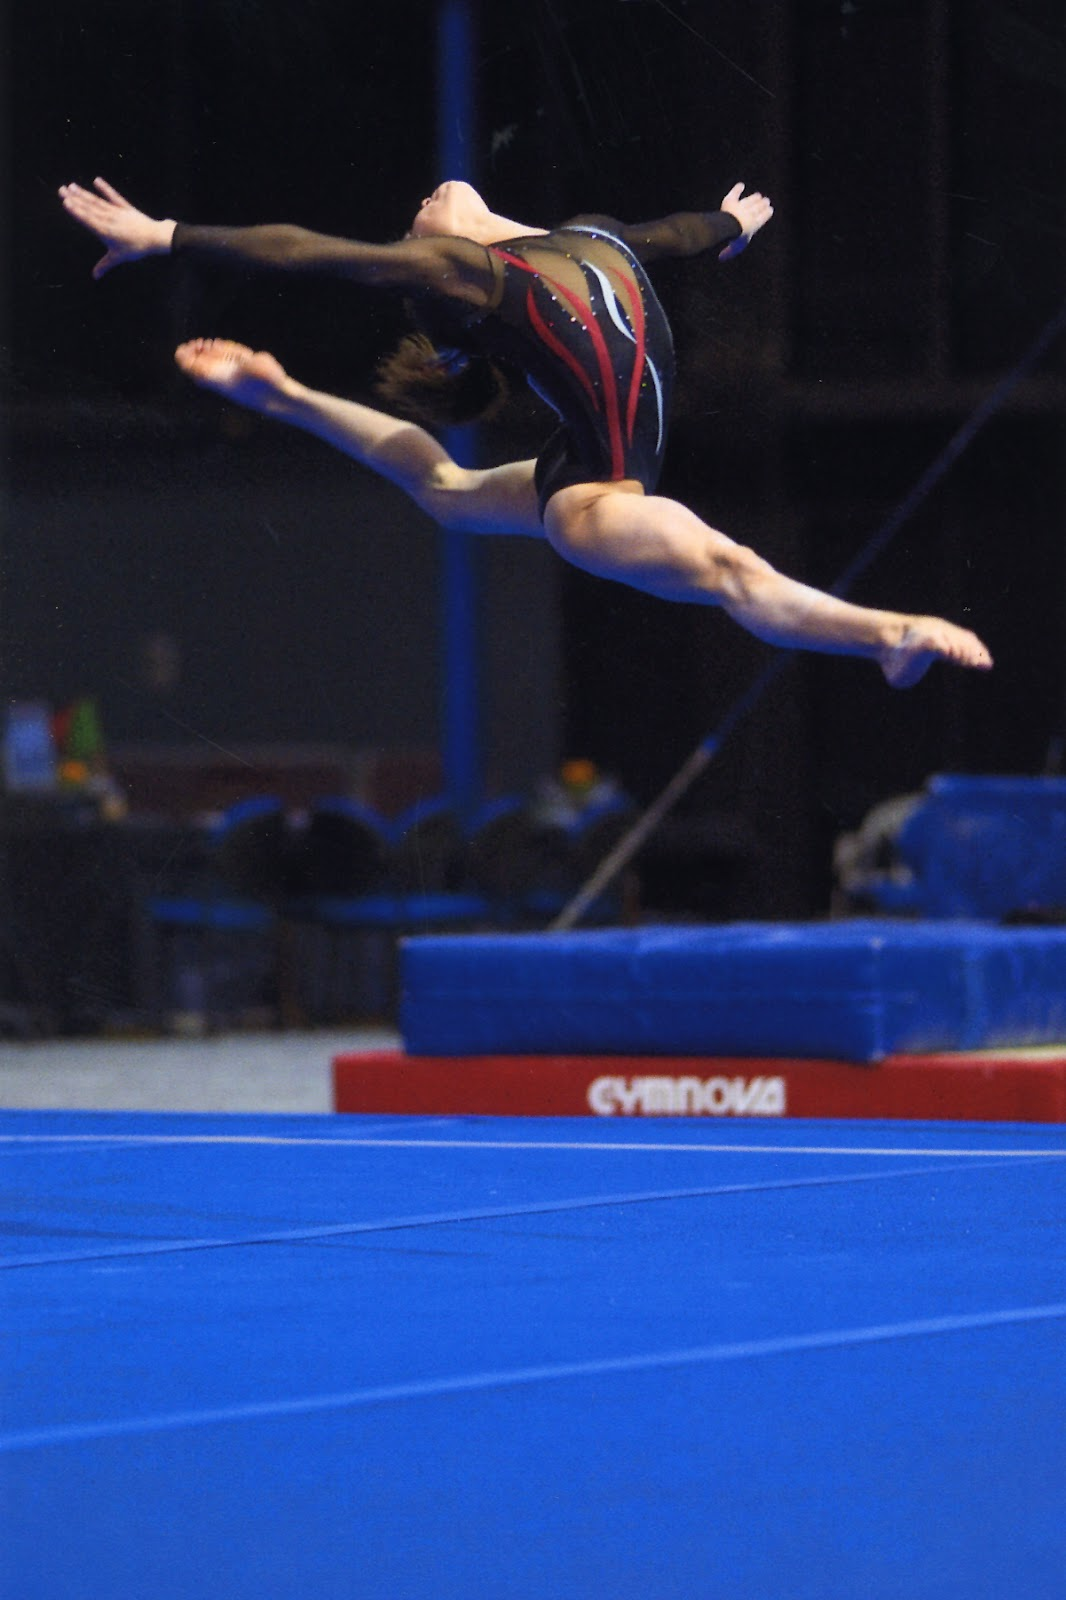 Gymnastic floor on pinterest gymnastics gymnasts and for Floor workout